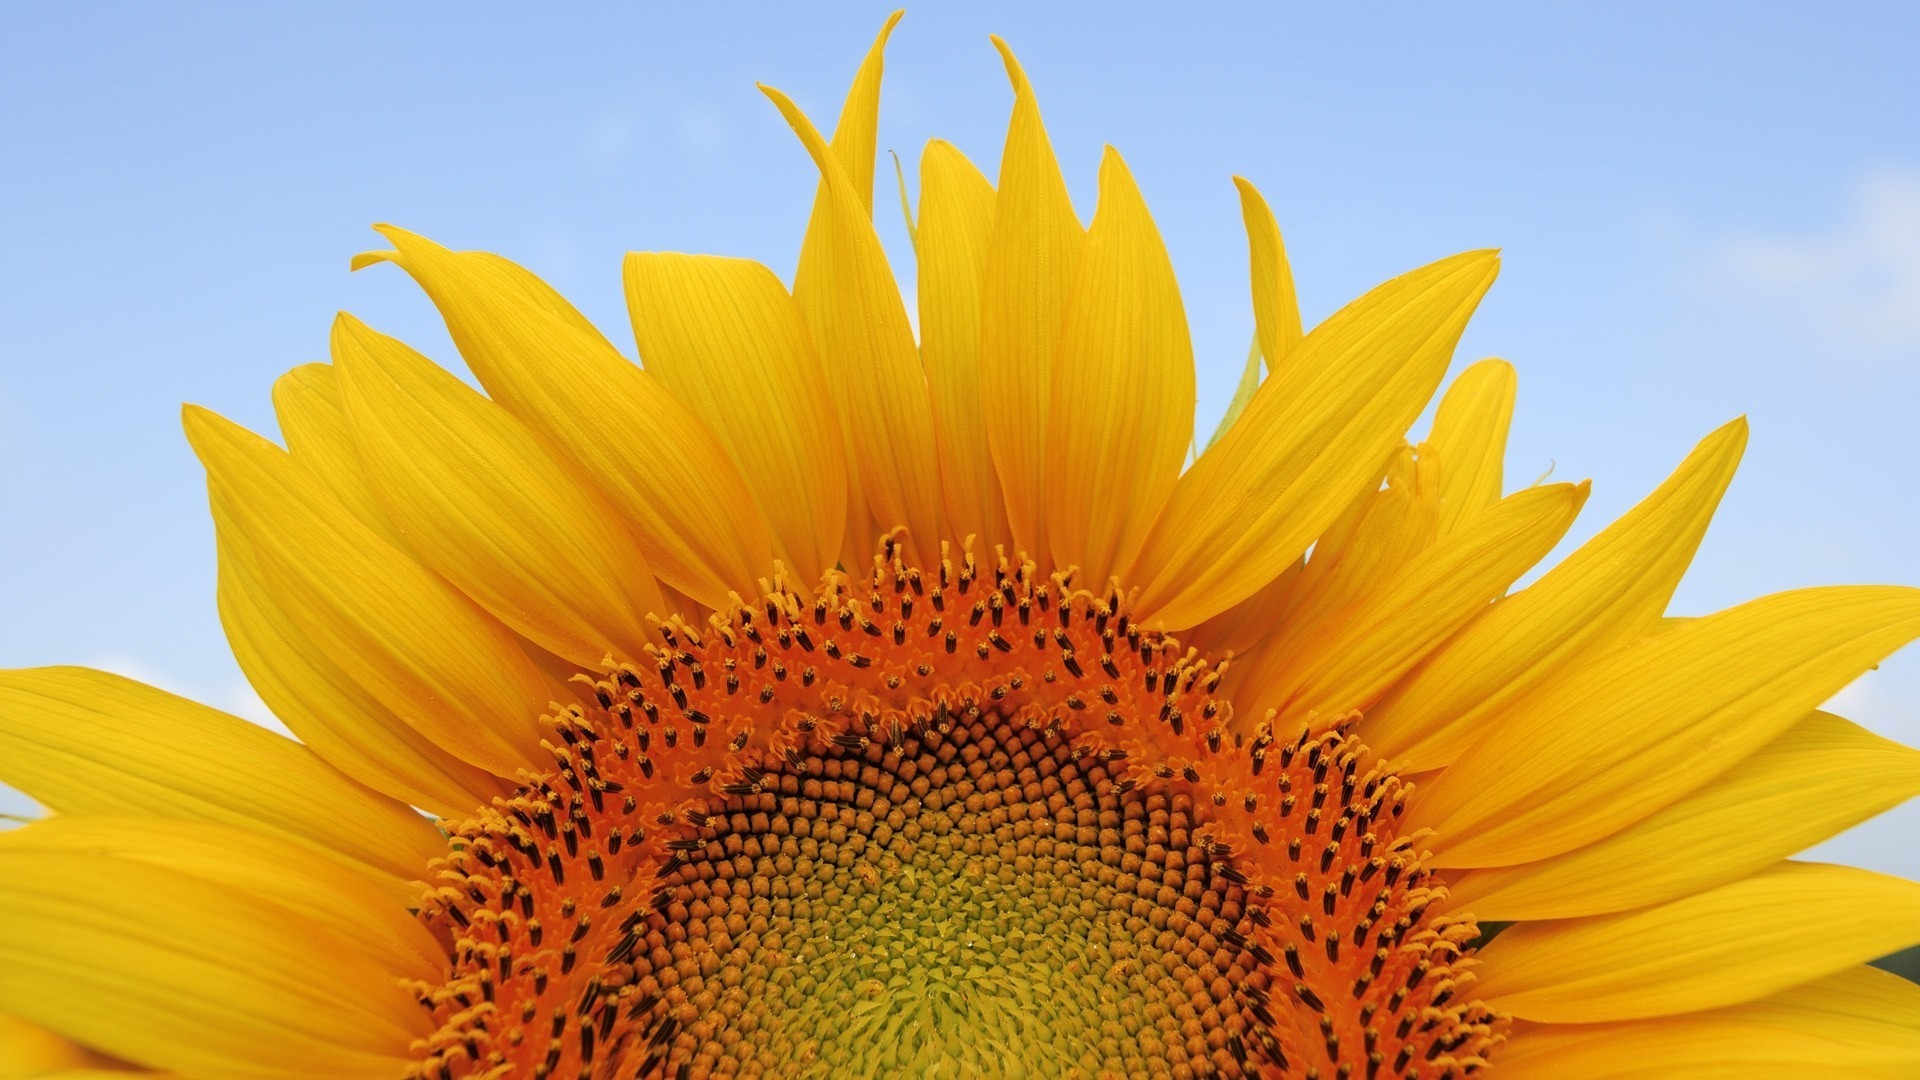 prime,sunflower,blossom,half,efflorescence,one half,helianthus,peak,flush,flowers,bloom,heyday